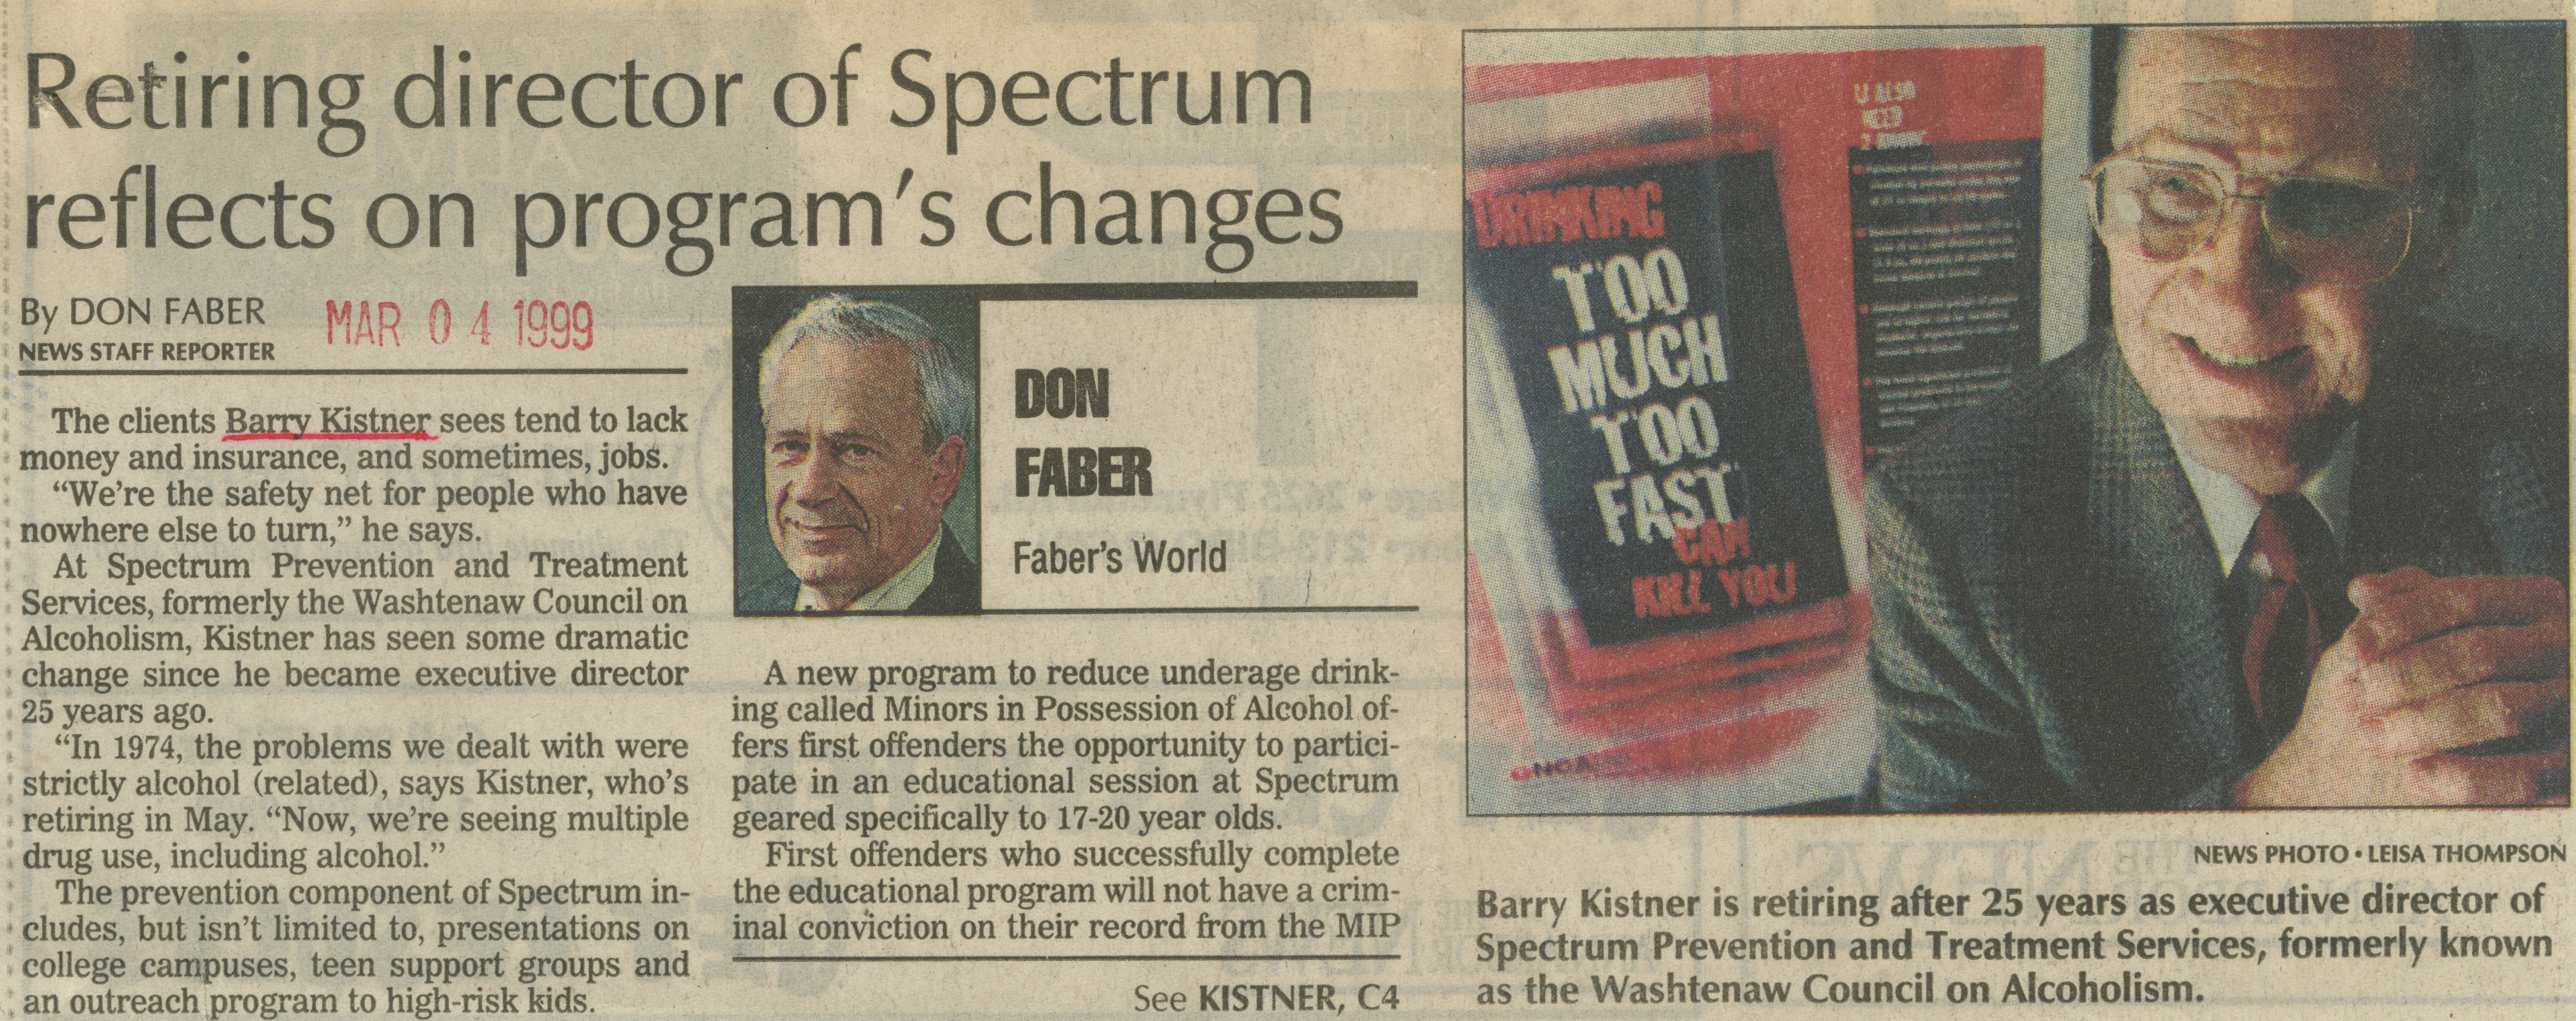 Retiring director of Spectrum reflects on program's changes image